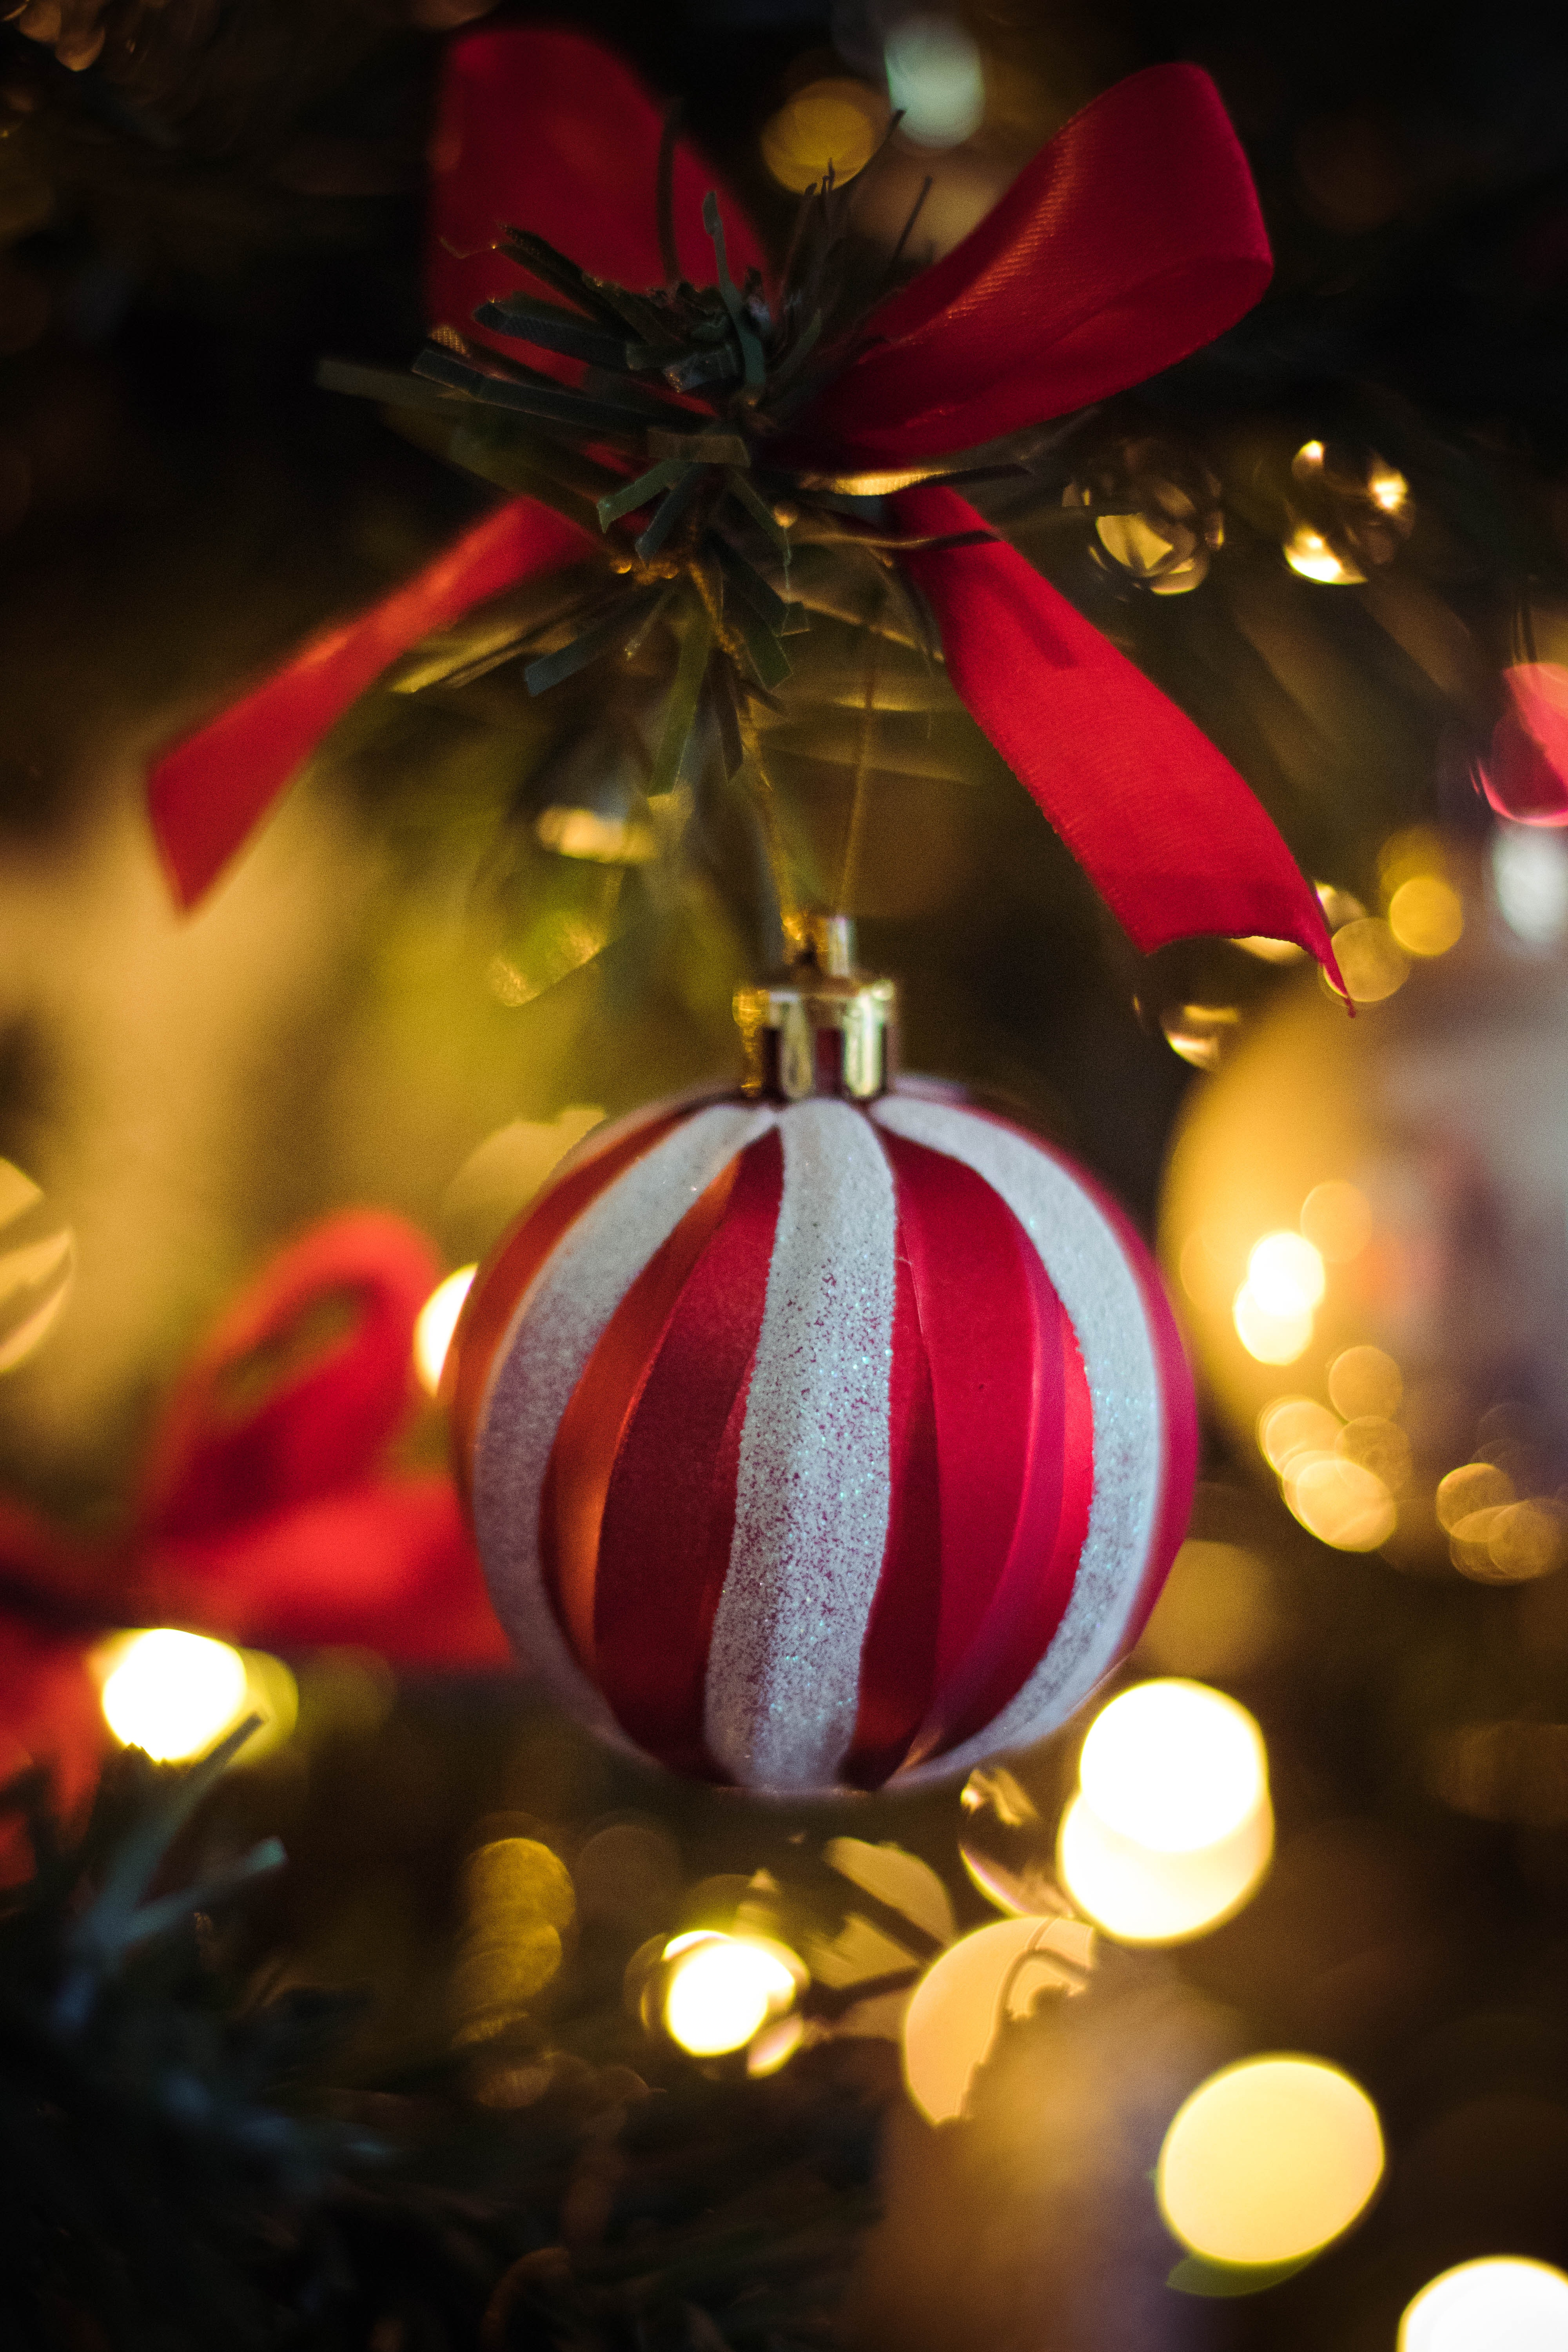 Red and White Stripe Christmas Bauble Hanging on Christmas Tree, Ball, Golden, Thread, Sphere, HQ Photo